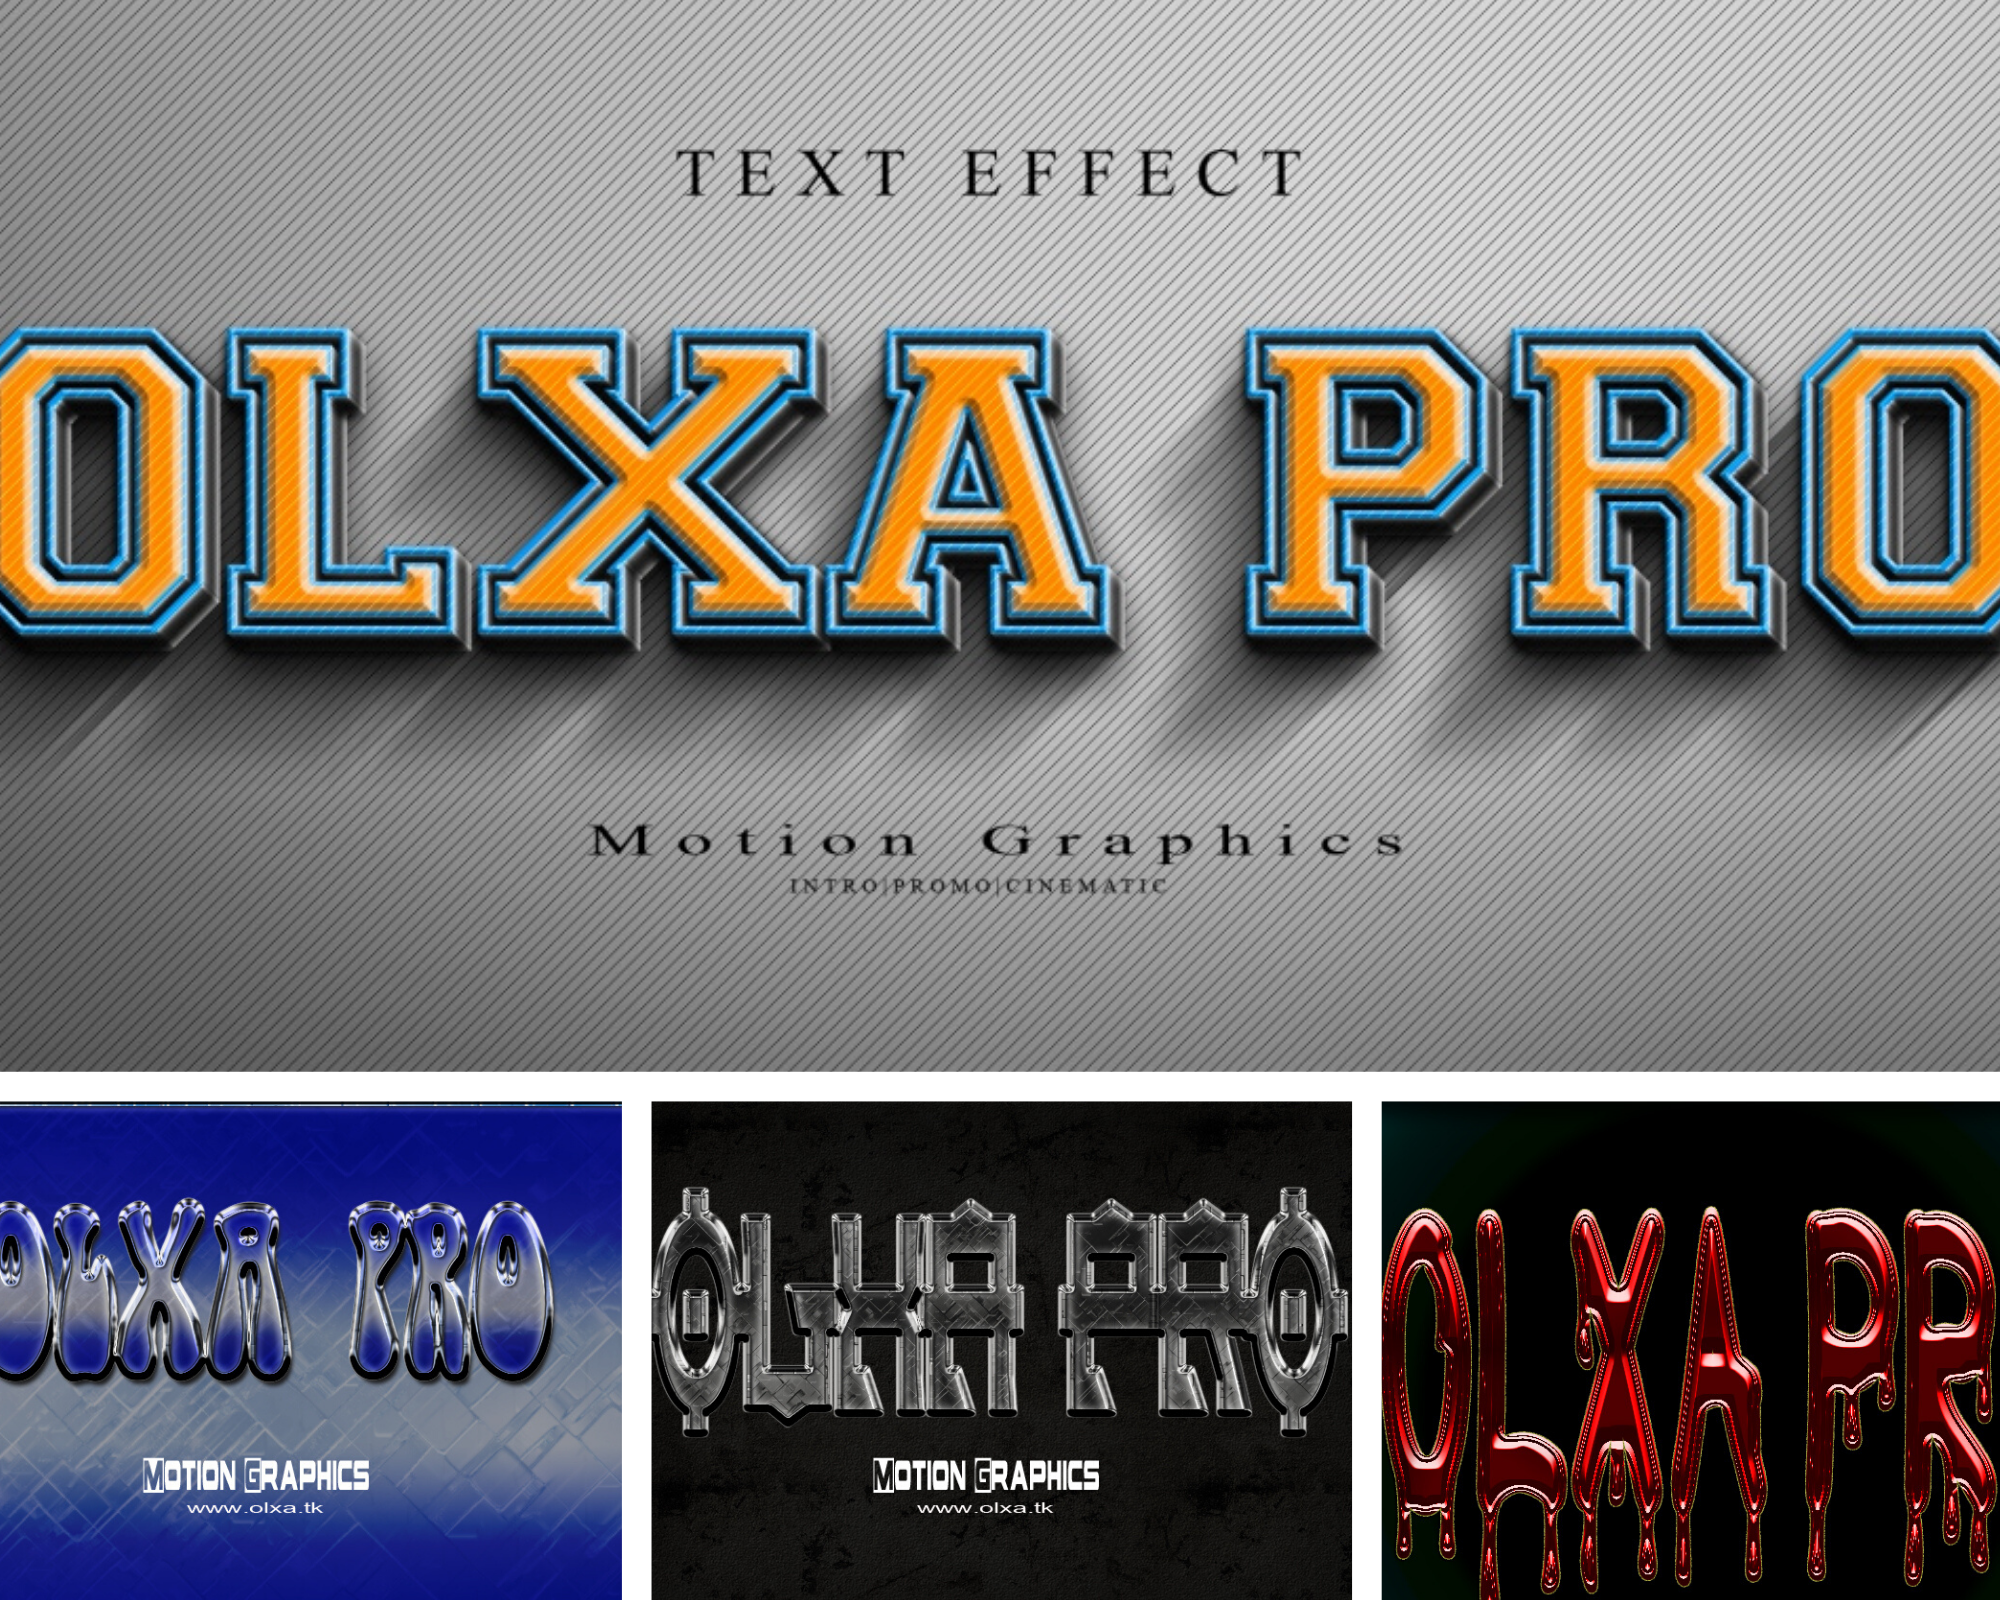 Own 200 PSD files with unique text effects